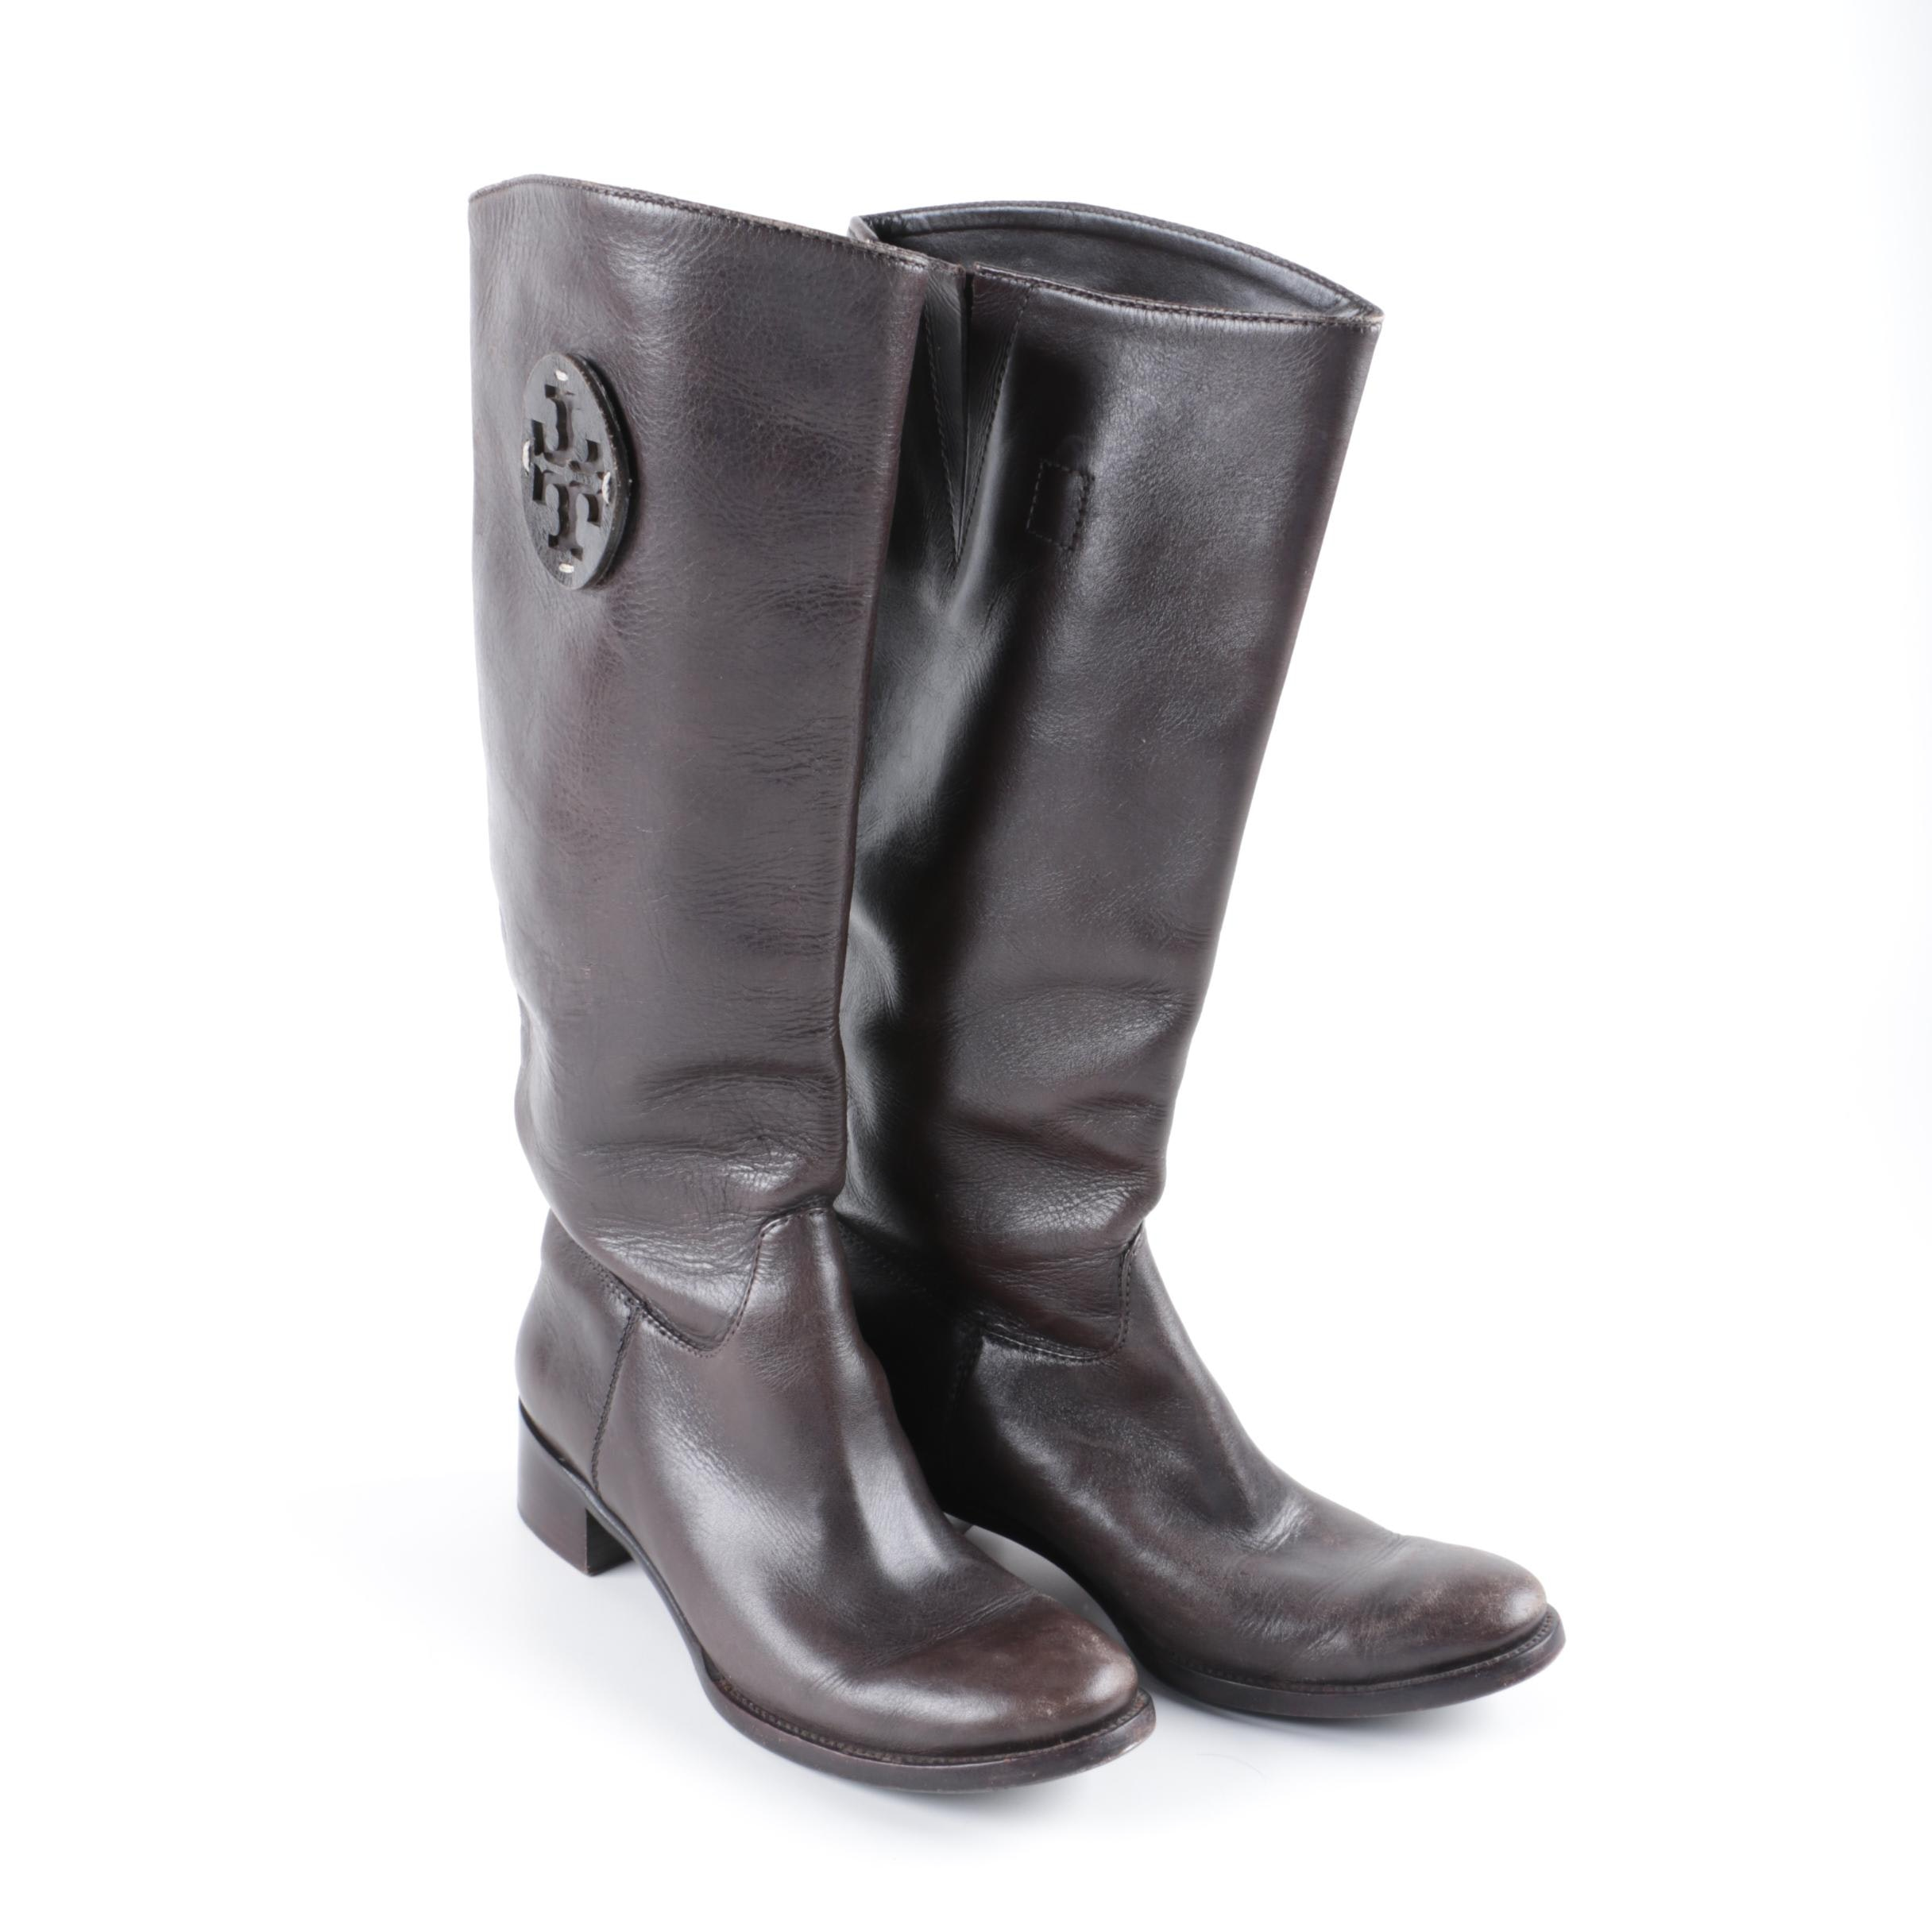 Women's Tory Burch Brown Leather Boots